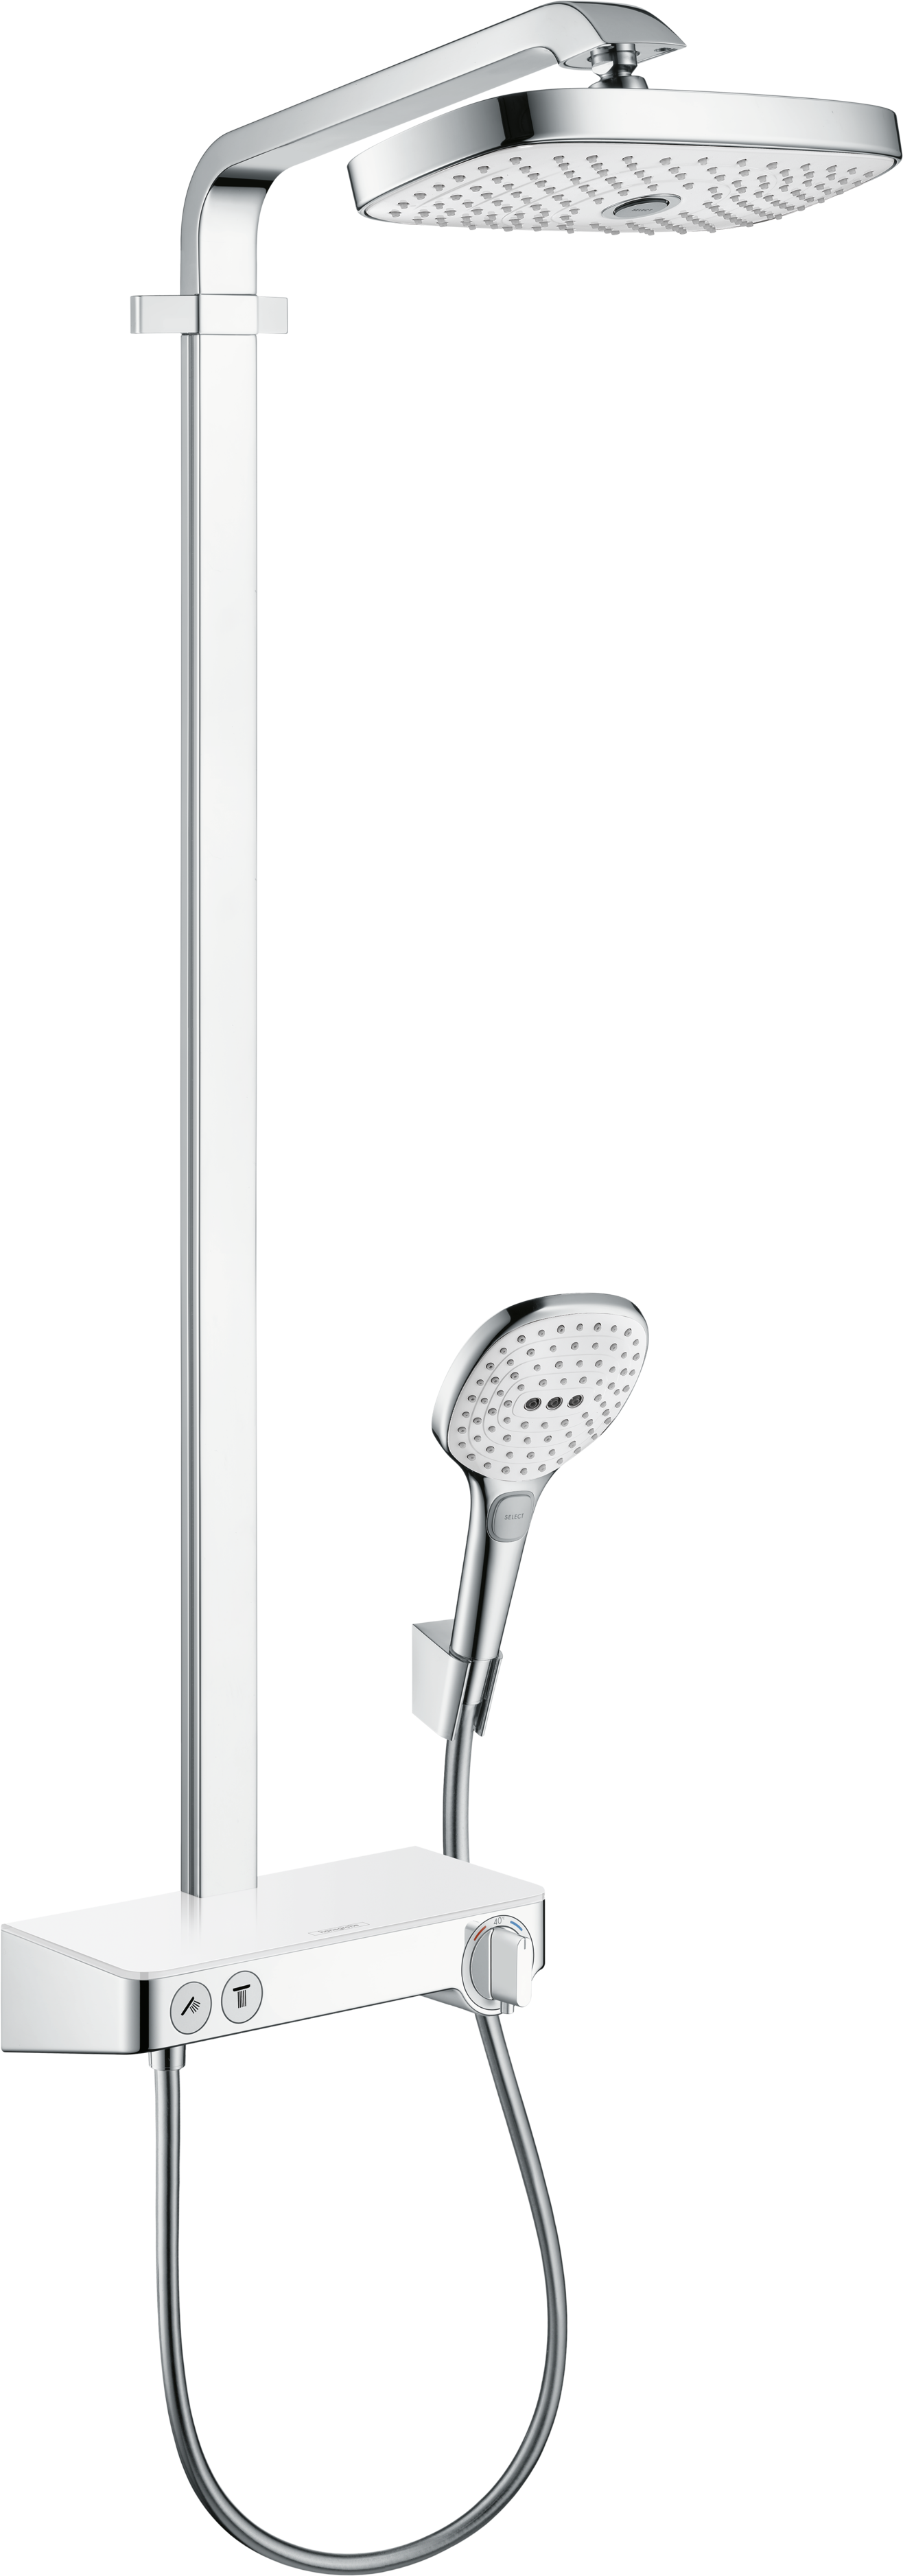 Hansgrohe Showerpipe 300 with Select Shower Controls, 2.0 GPM